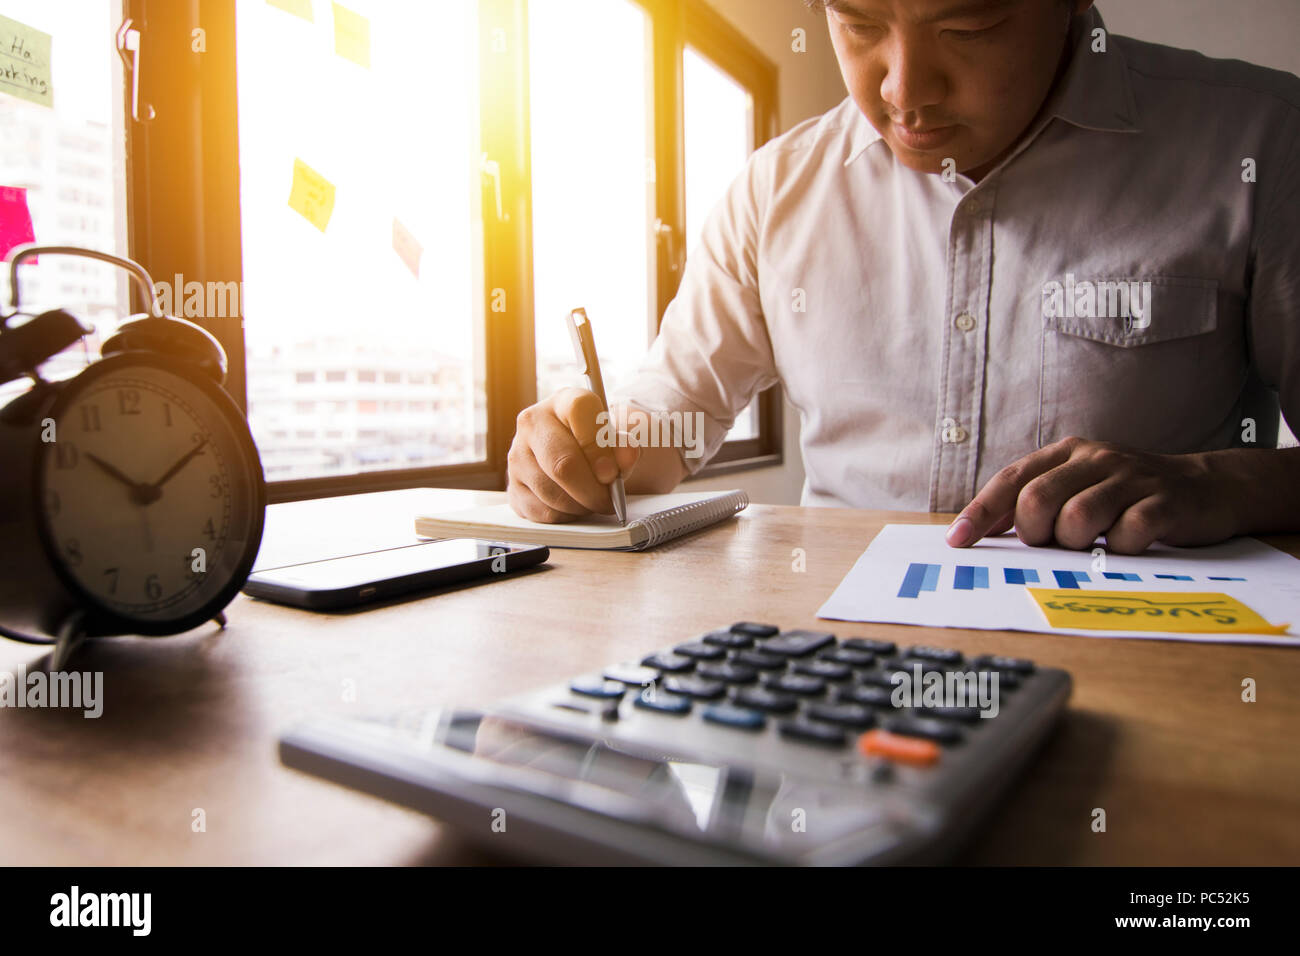 Accountant calculate finance of annual profit by press calculator and summed up balance money by writing on note book in office - Stock Image